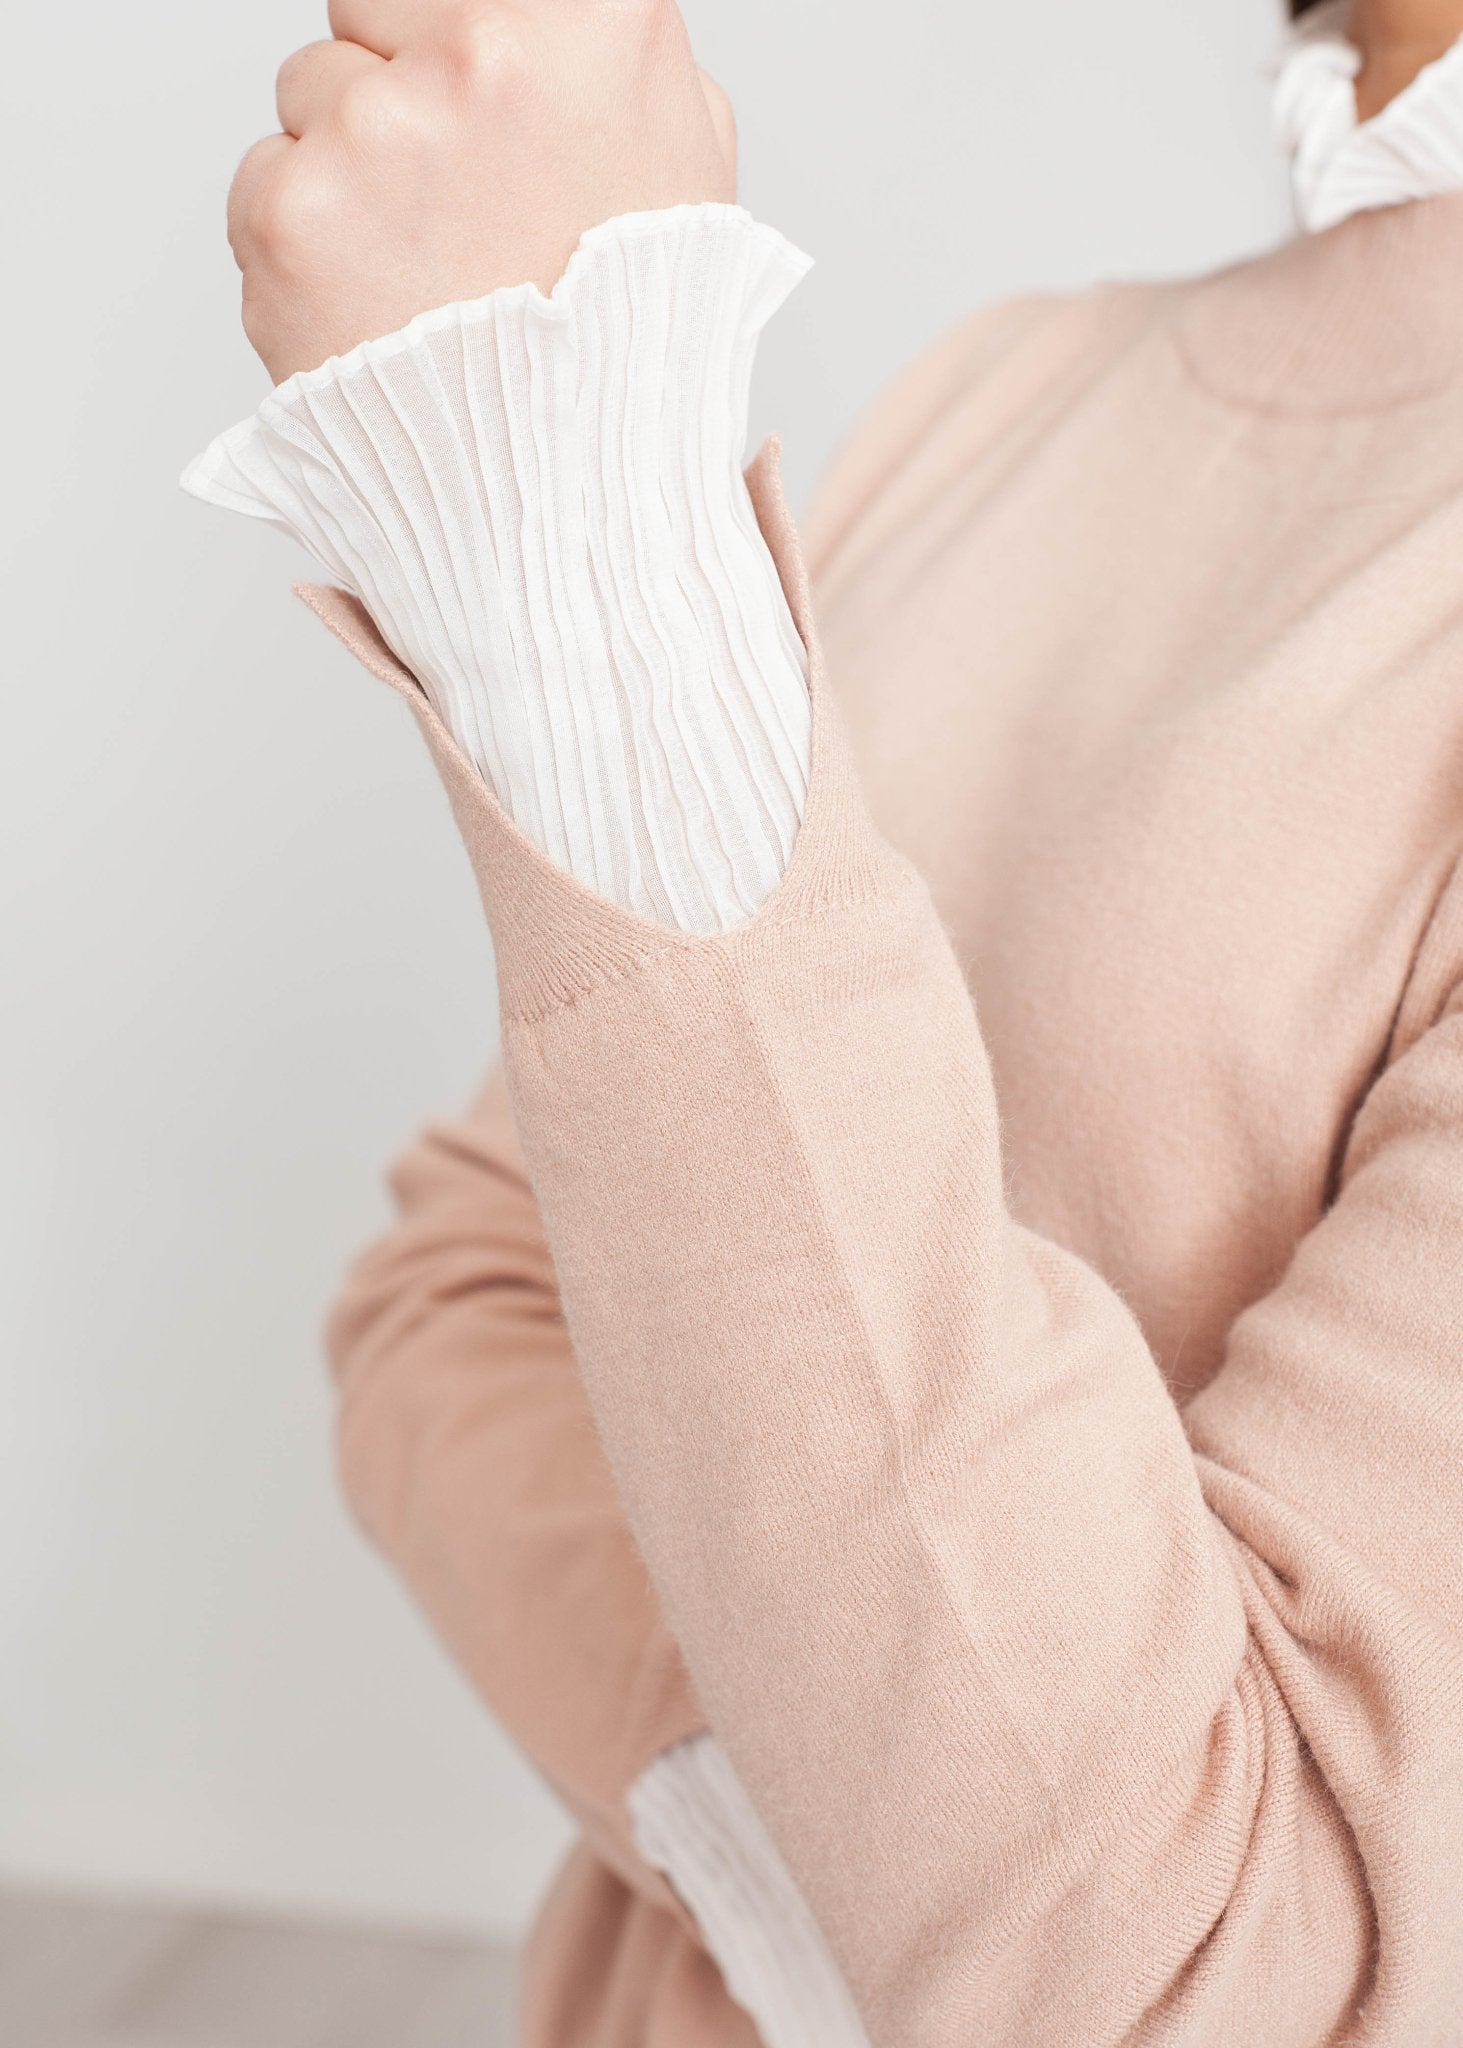 Elsa Jumper With Frill In Blush - The Walk in Wardrobe